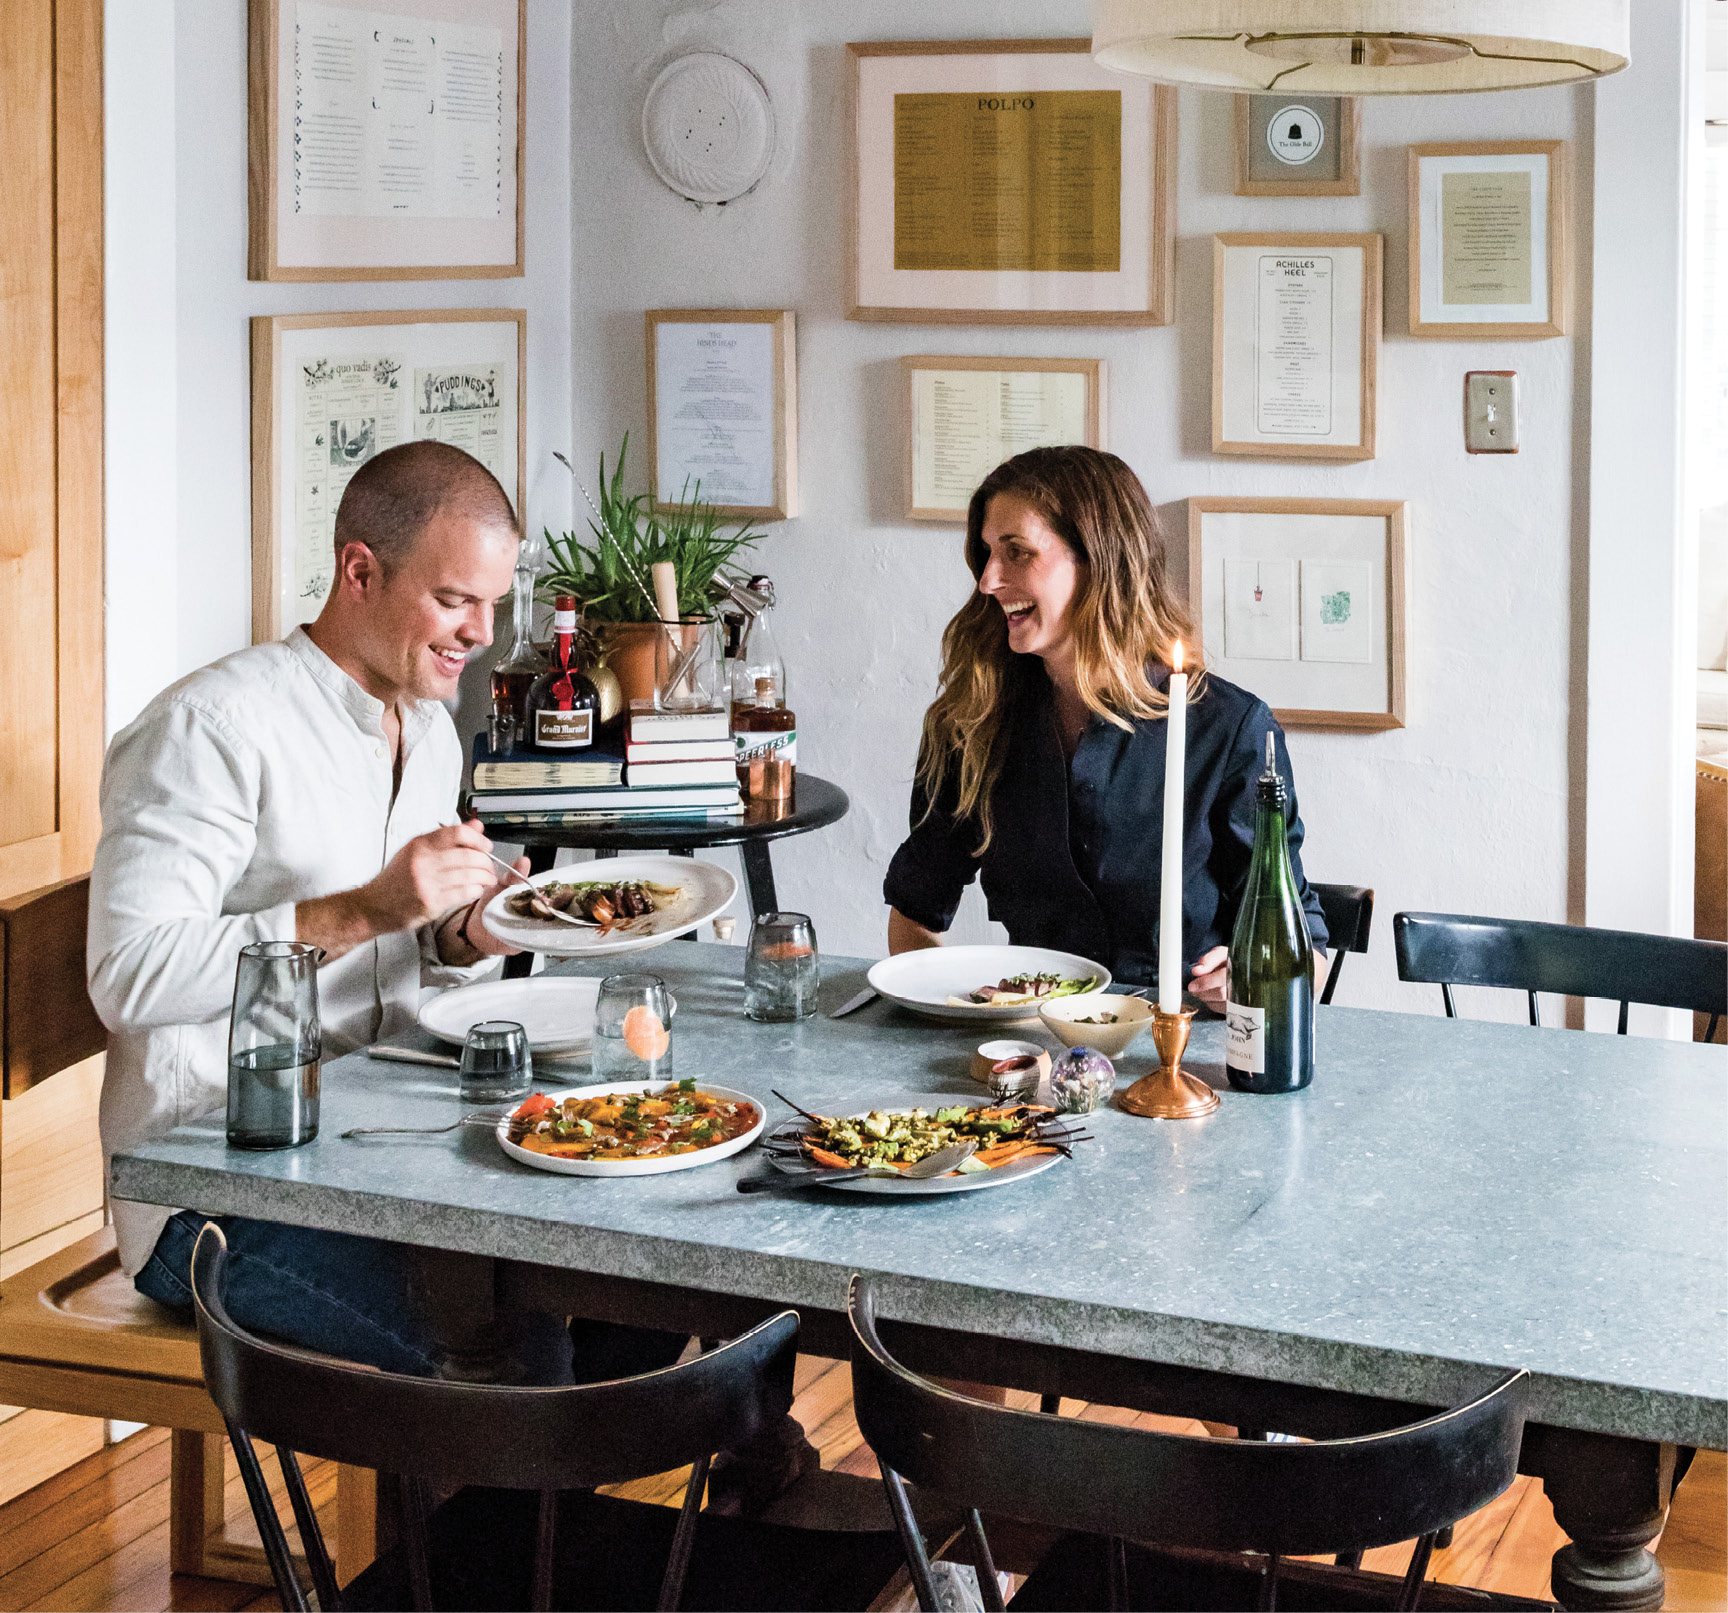 Cozy dinners at home are a welcome reprieve for the busy entrepreneurs. Plus, special touches like lit candles and beautifully garnished dishes make the case for spending date night in.